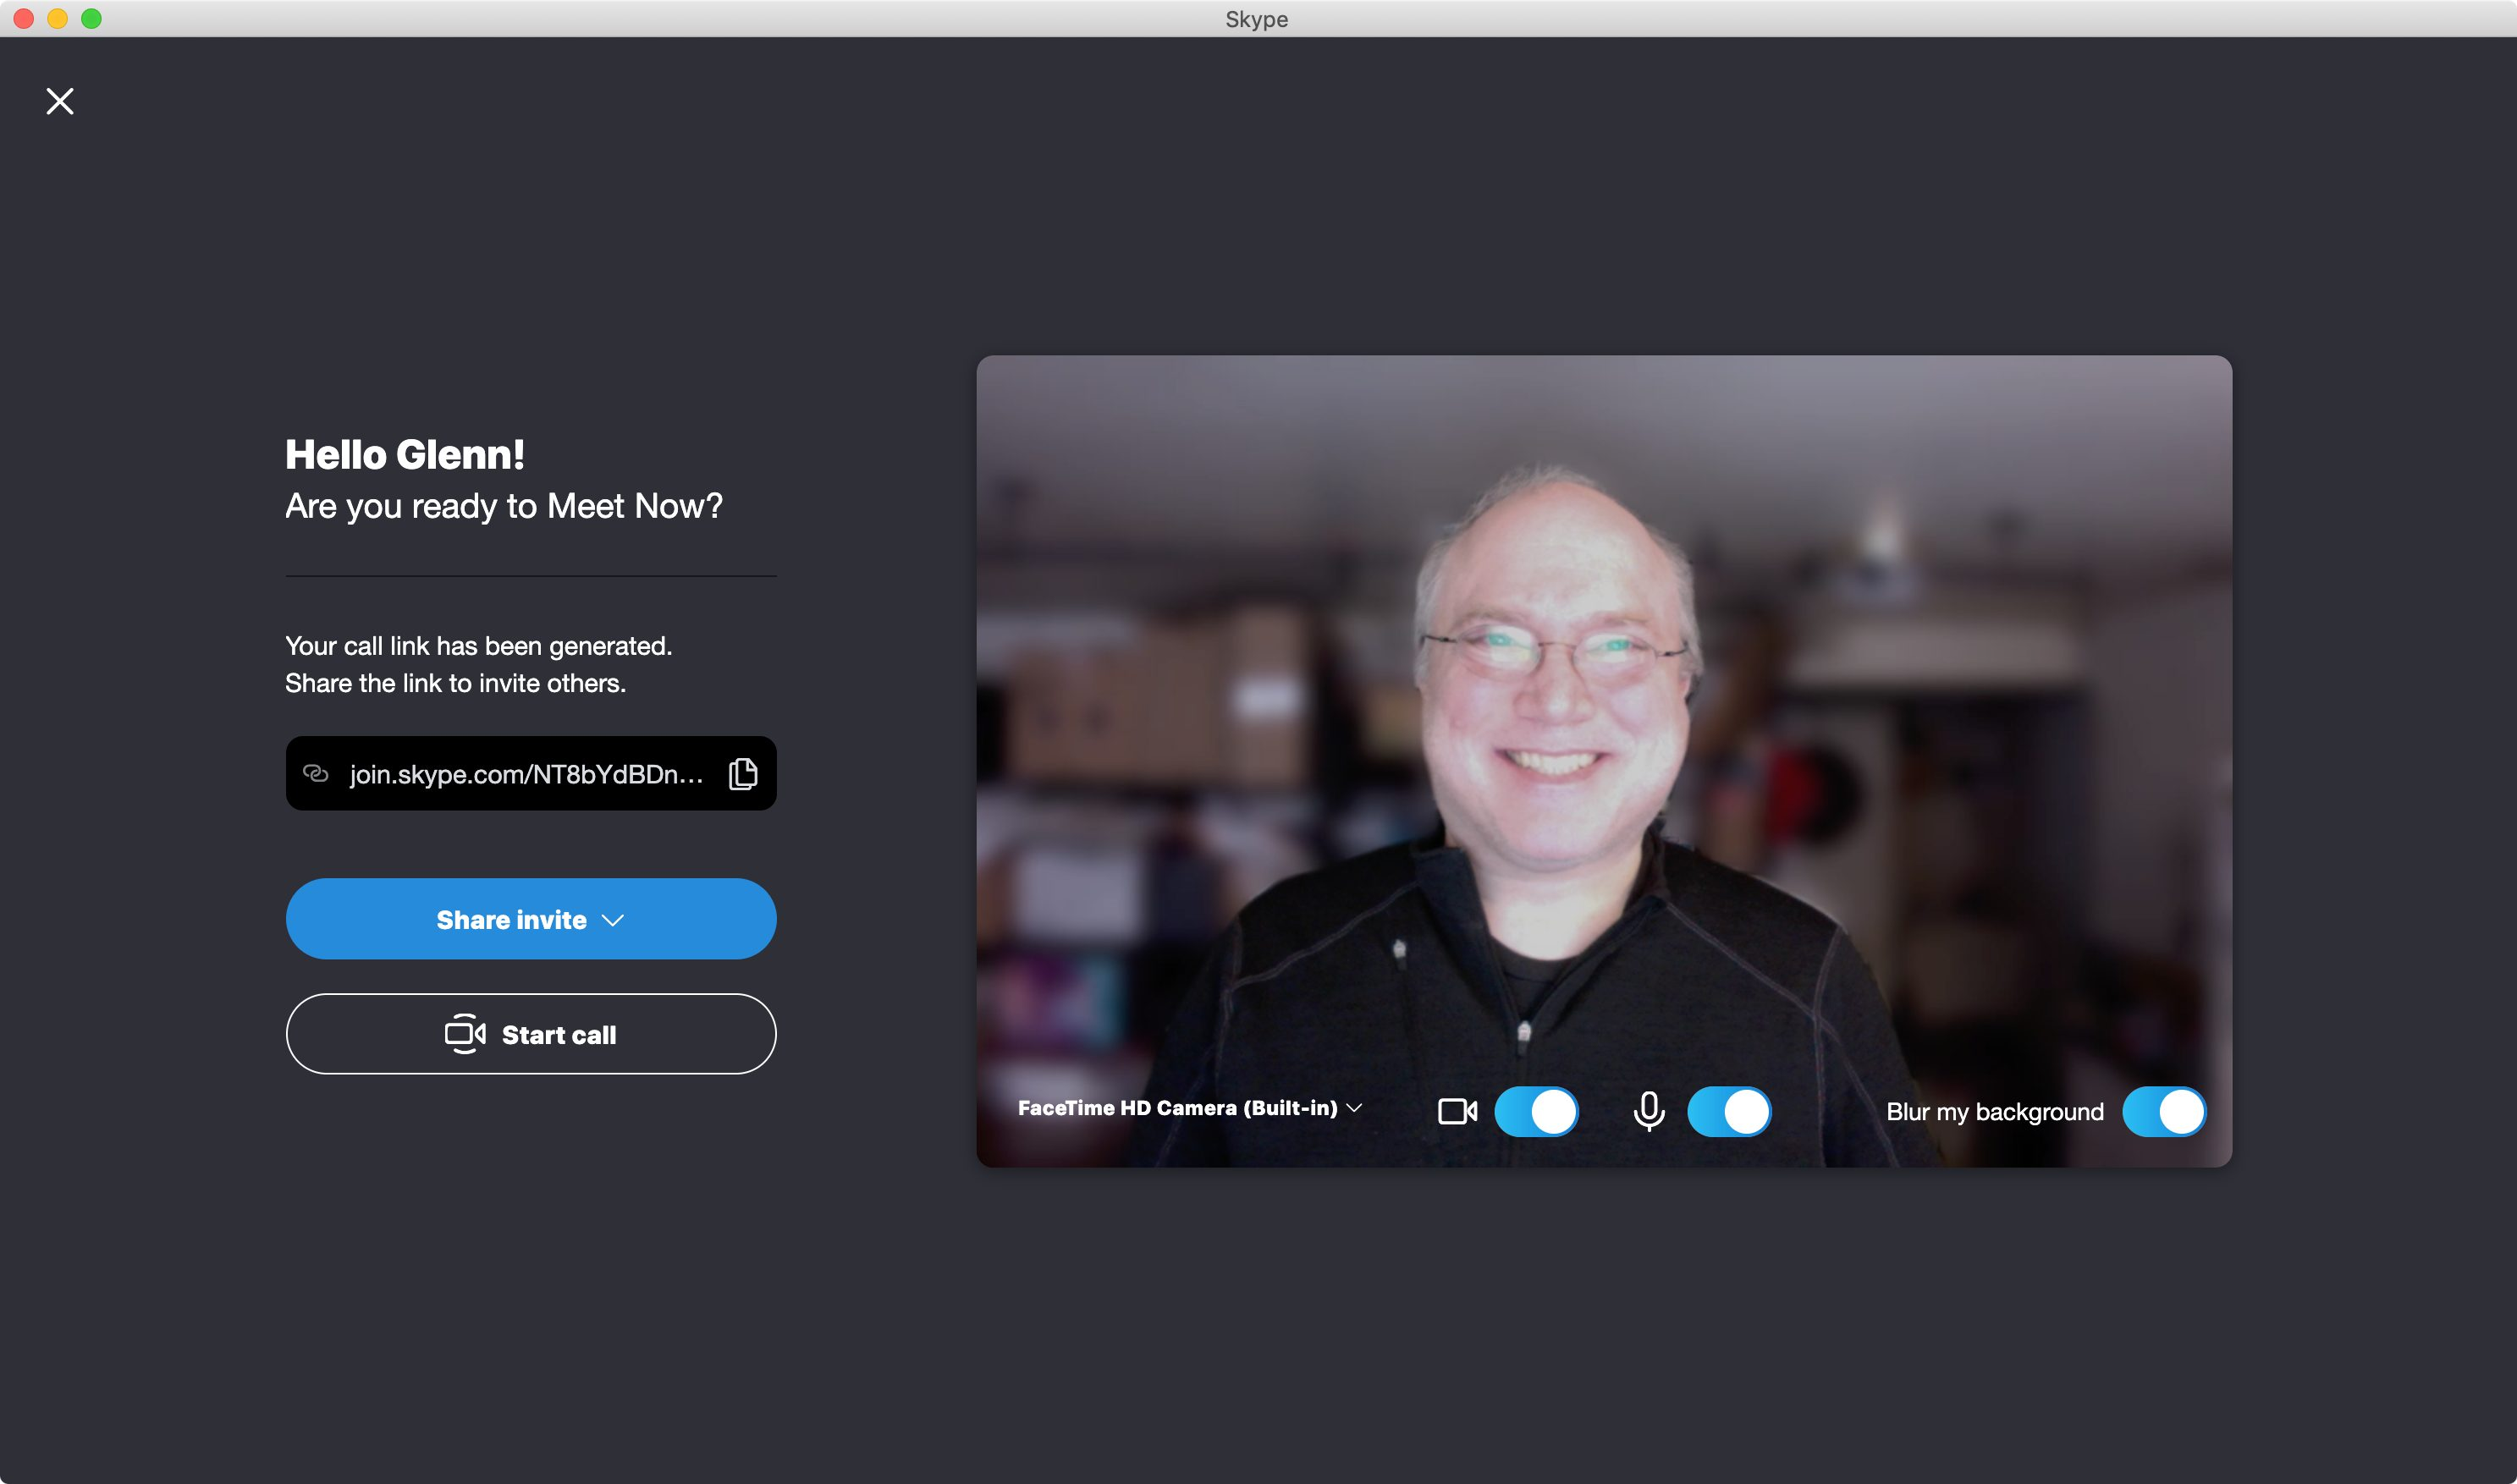 Skype Meet Now interface